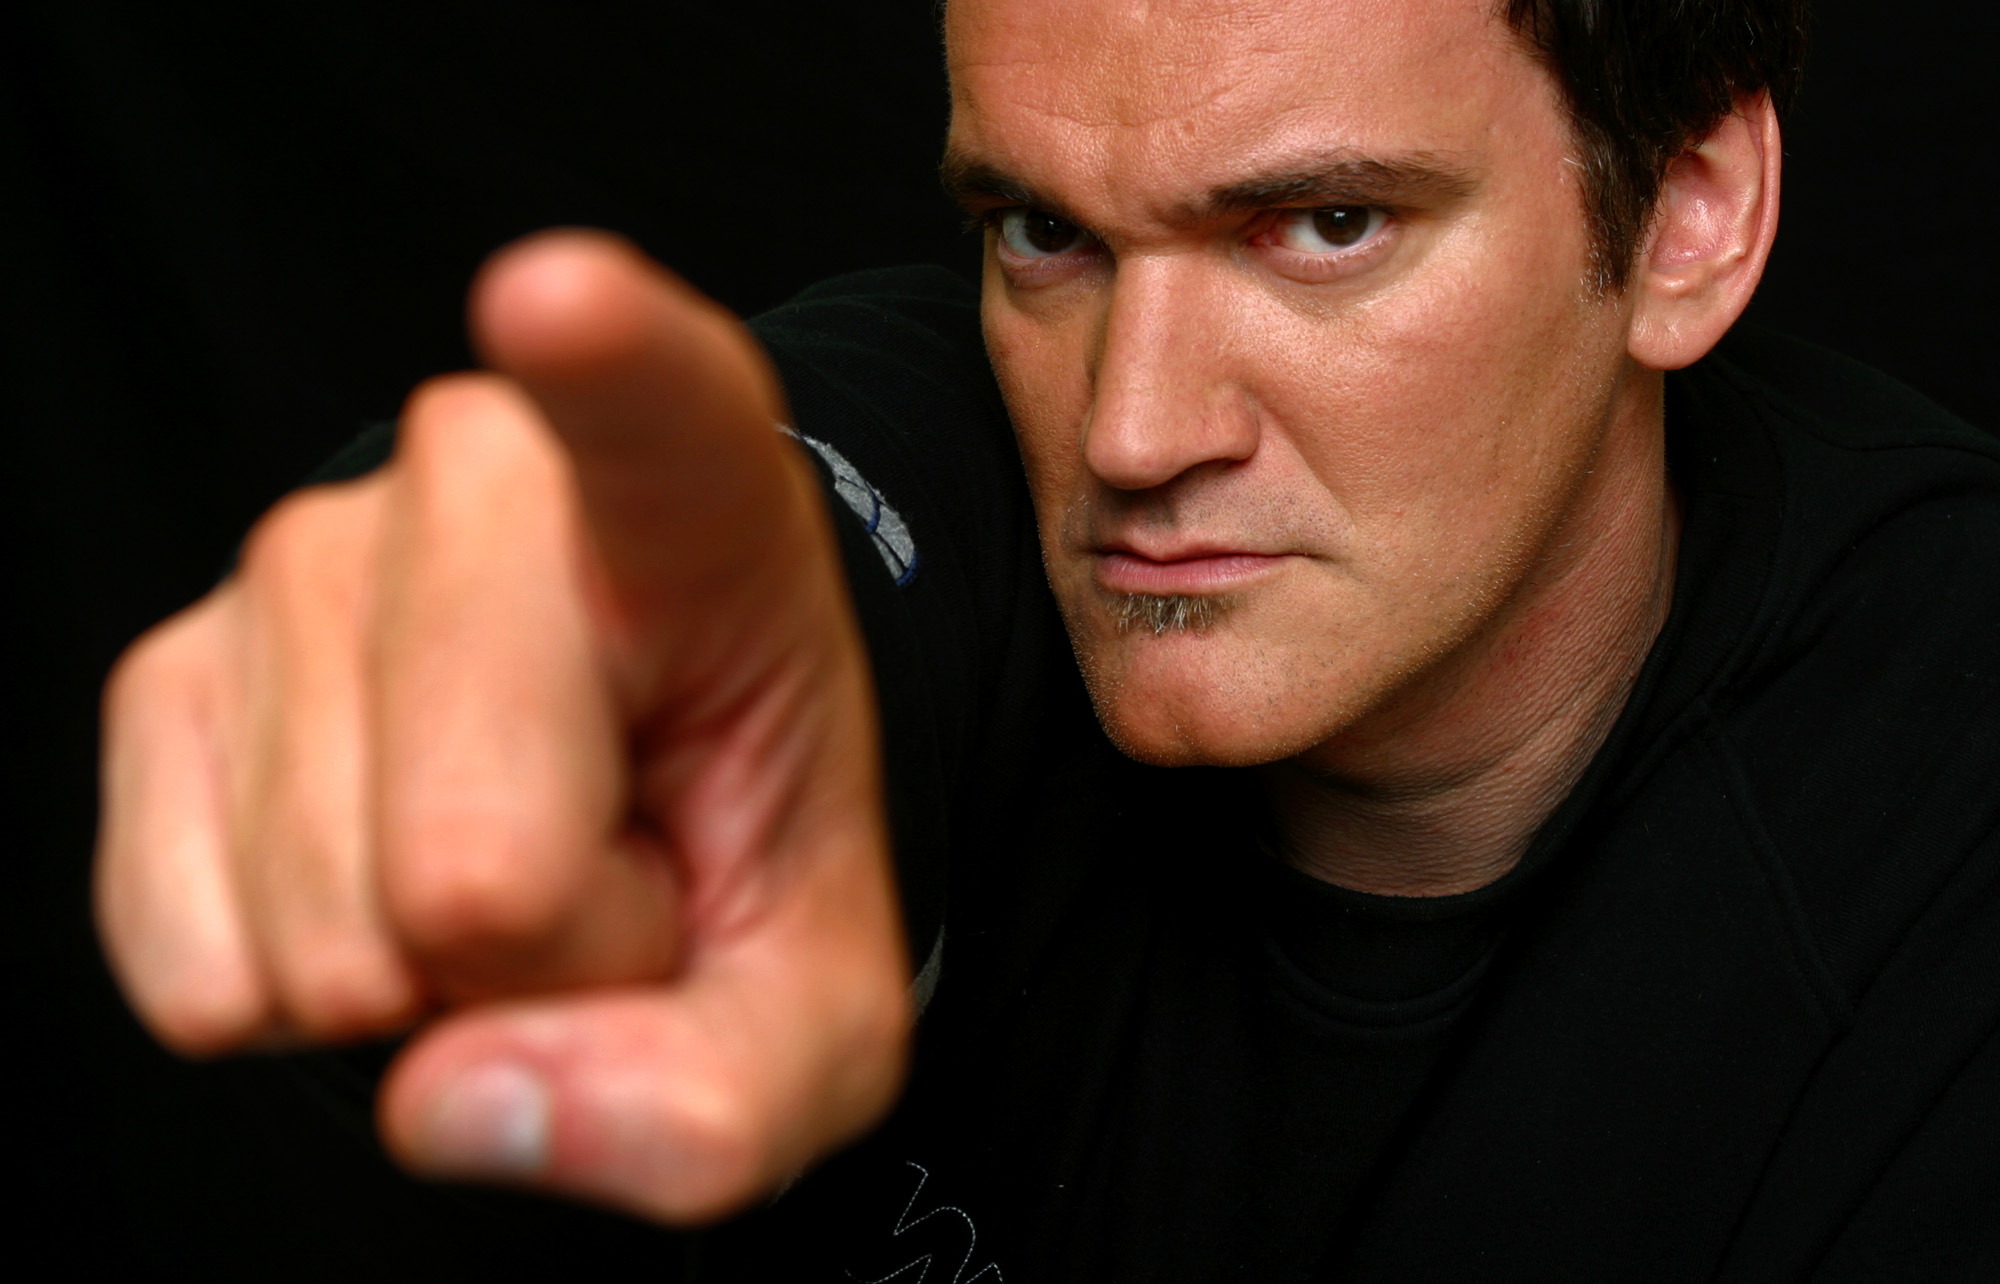 """Writer-director Quentin Tarantino is shown in this portrait taken at the Four Season Hotel in Beverly Hills, Calif., Friday, Sept. 26, 2003. Tarantino returns to the big screen after a six-year absence with his two-part action saga, """"Kill Bill"""".  (AP Photo/Stefano Paltera)"""